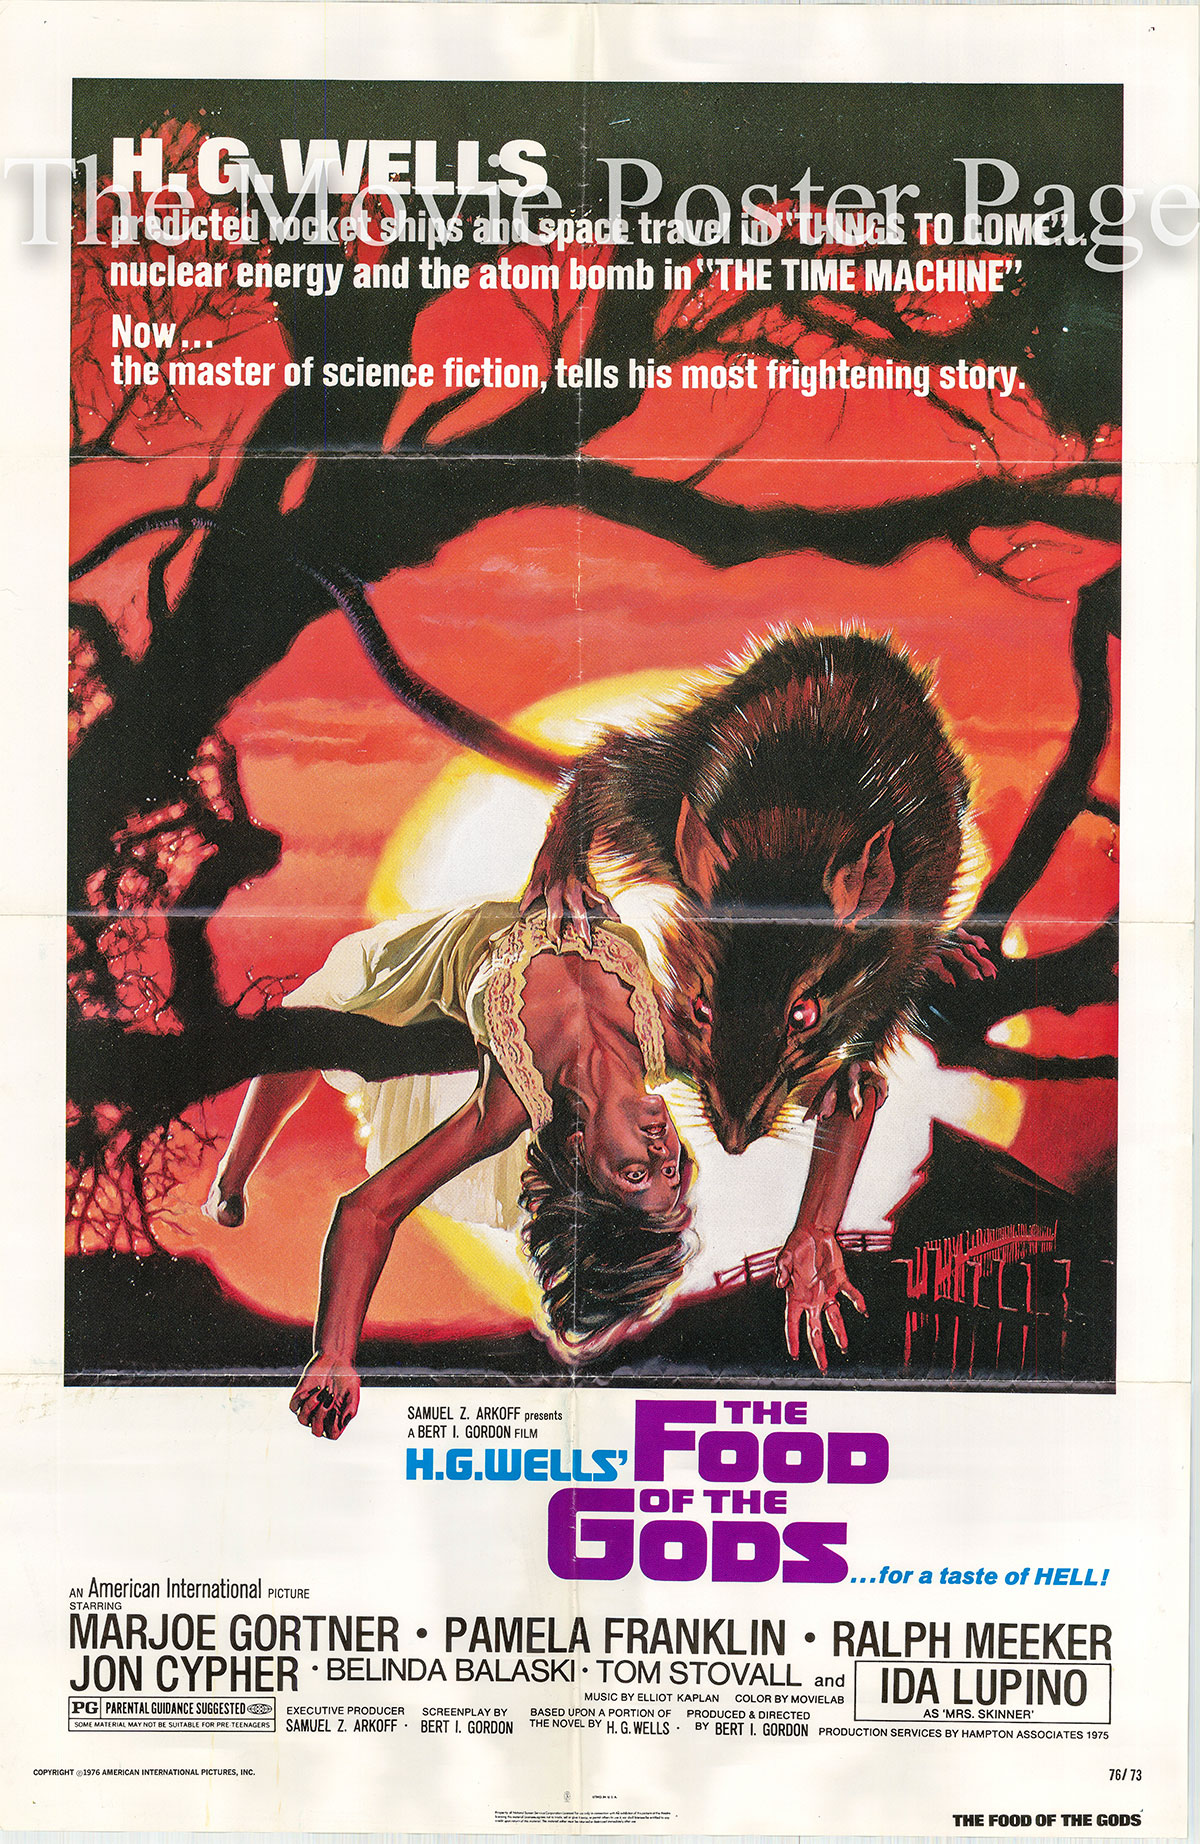 Pictured is a US one-sheet poster for the 1976 Bert I. Gordon film The Food of the Gods starring Marjoe Gortner as Morgan.